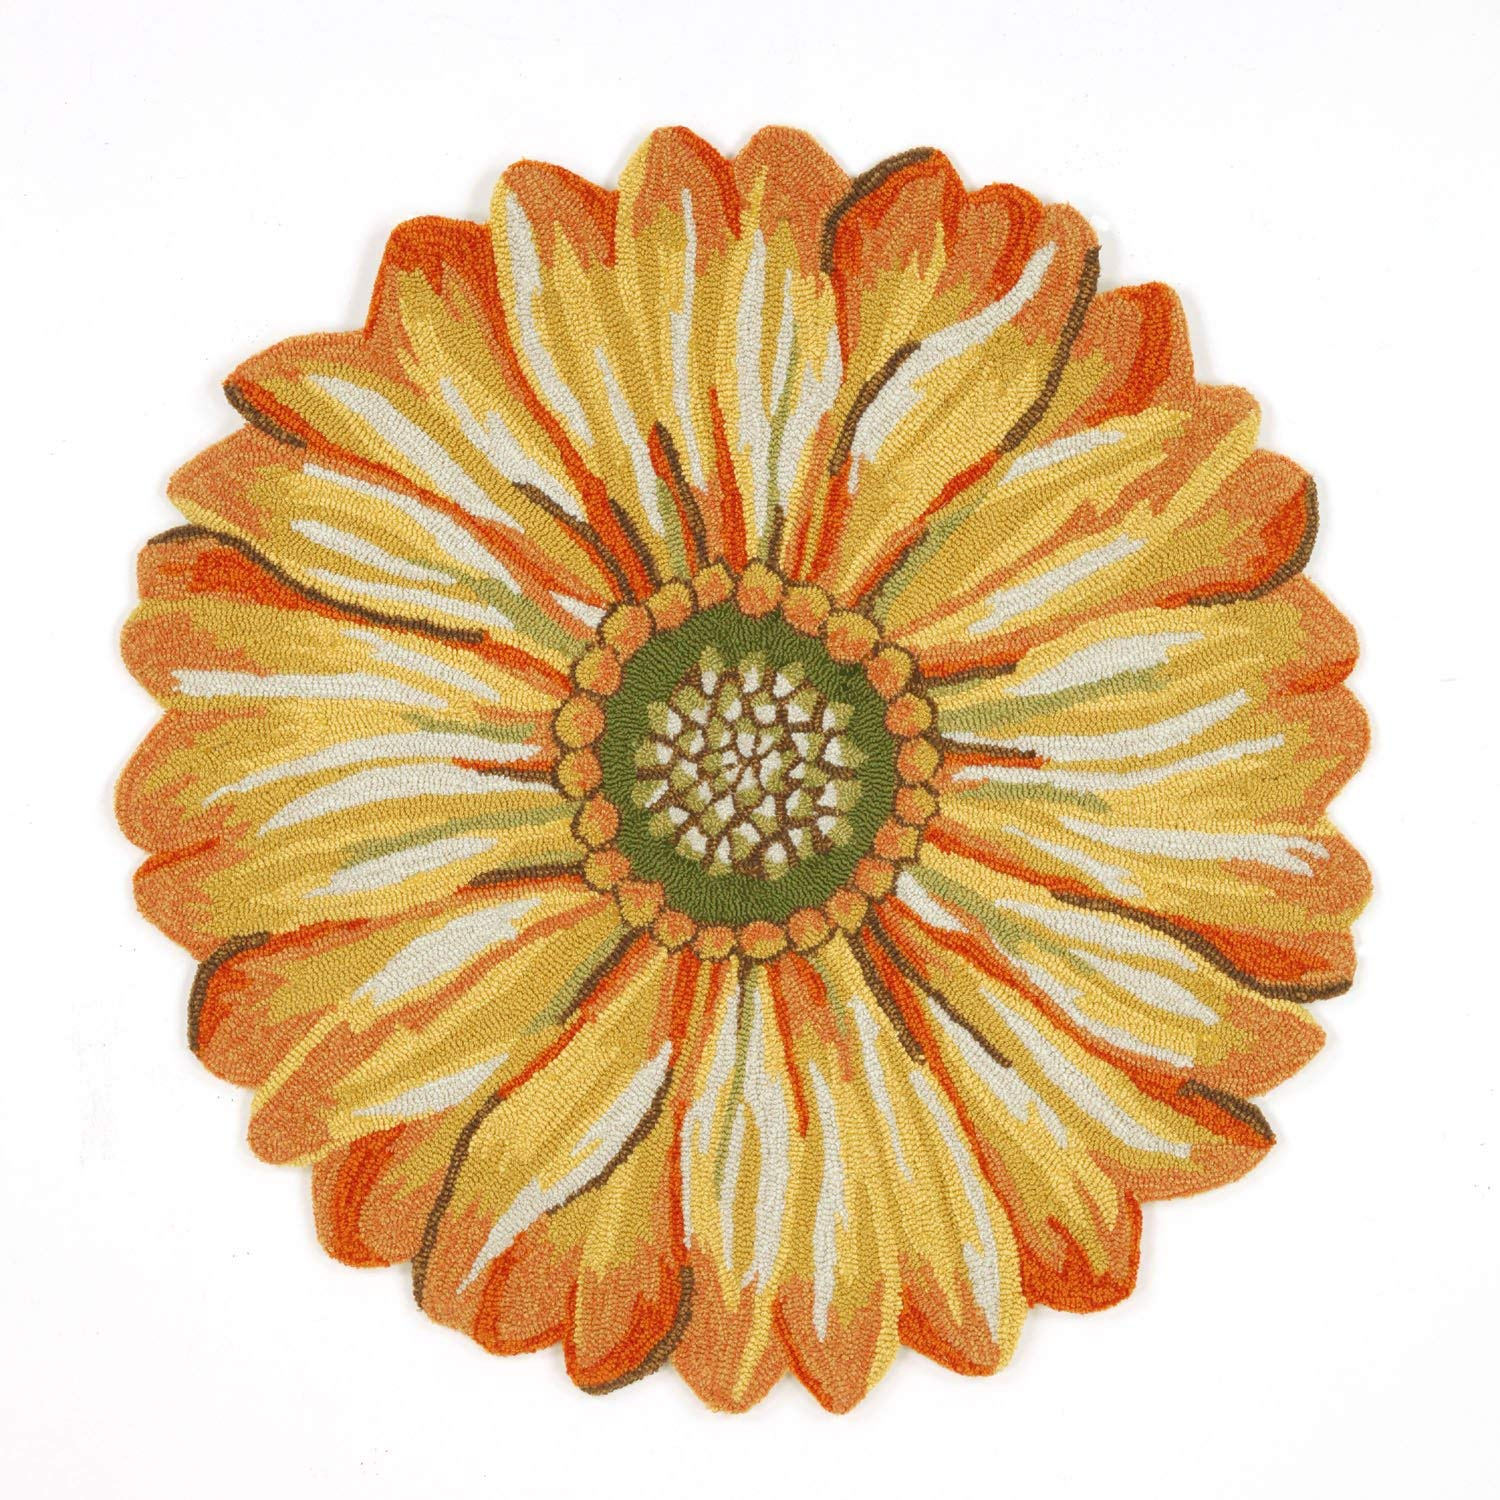 round rugs amazon.com : liora manne ft1d3a50209 whimsy round flowers rug,  indoor/outdoor, 3u0027, yellow USCJVNV